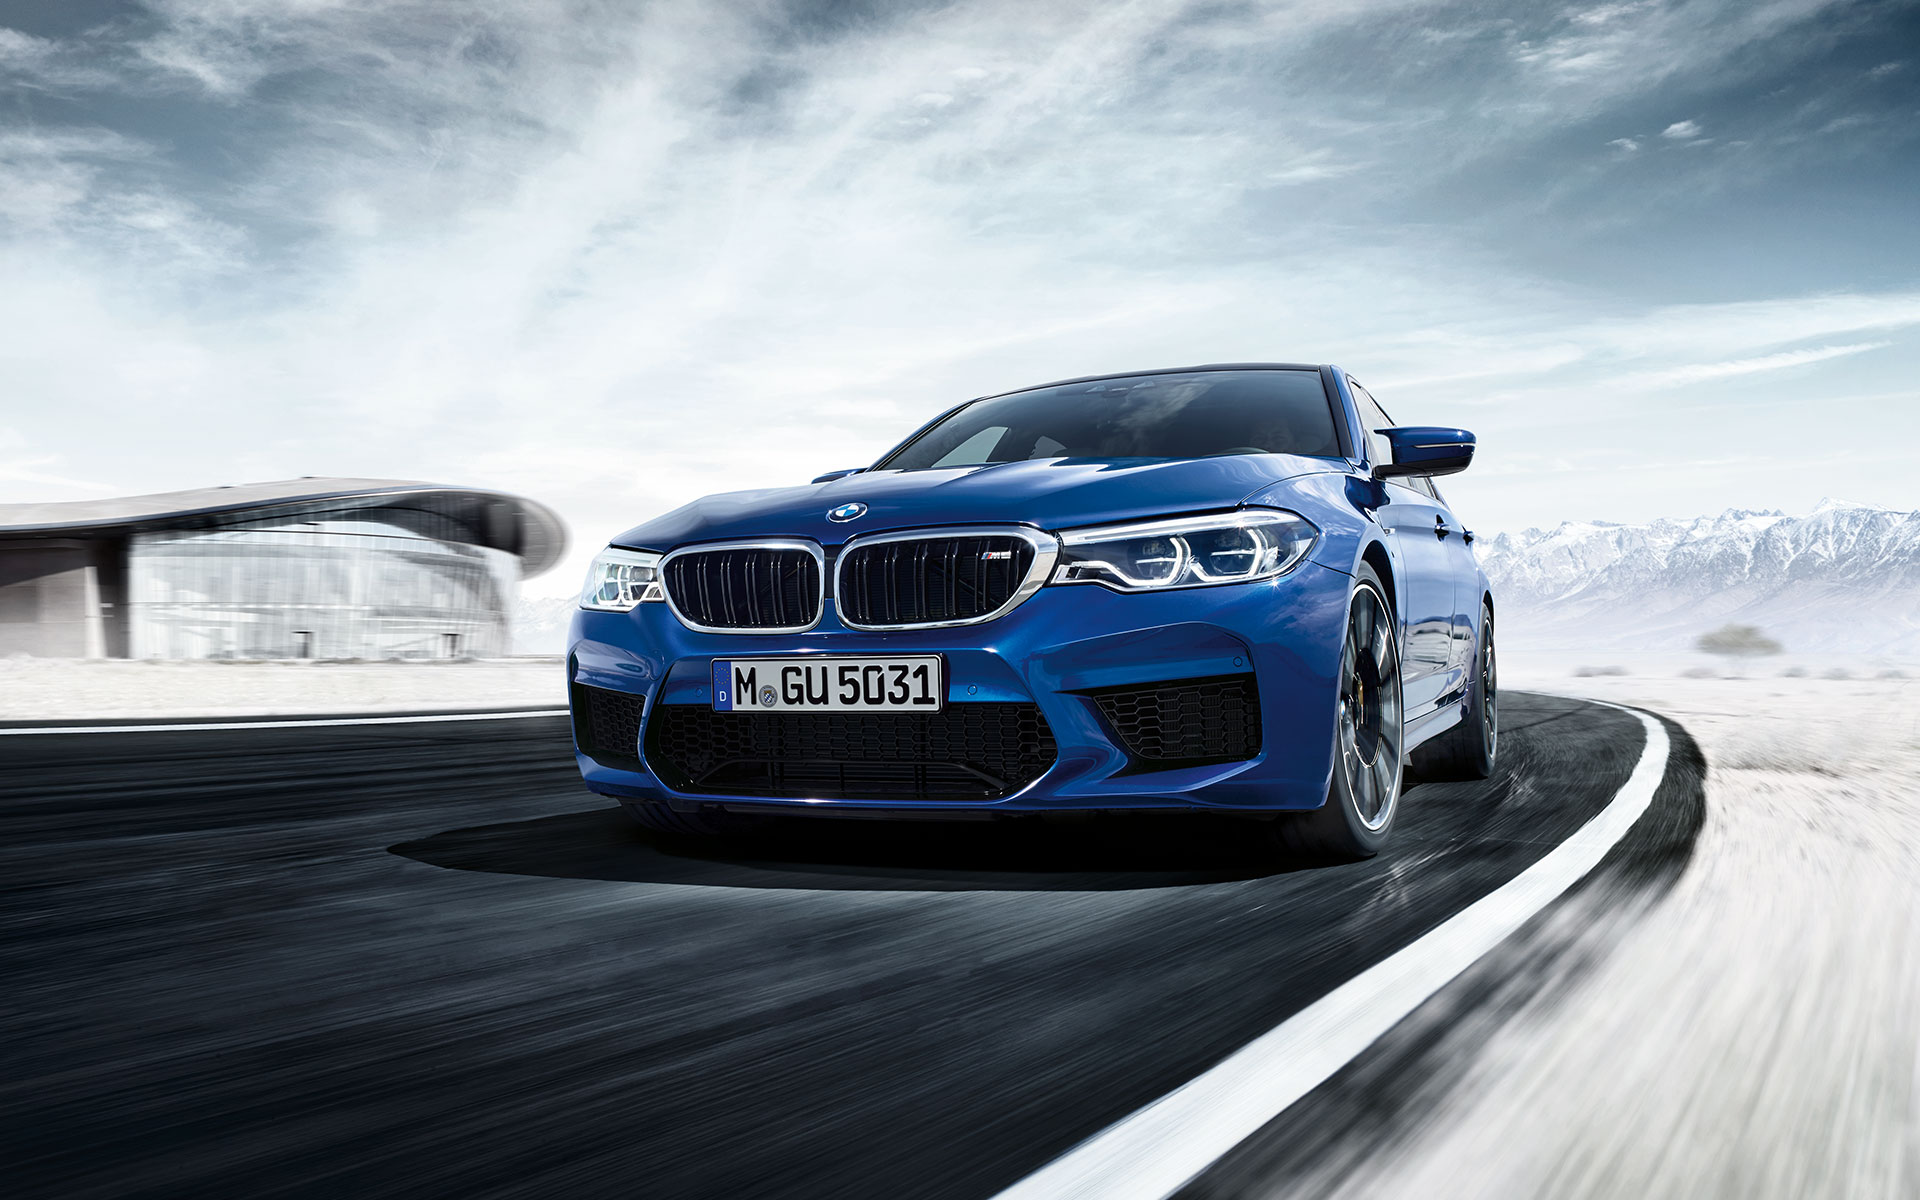 New BMW M-Series M5 Sedan bue: racing on the snow